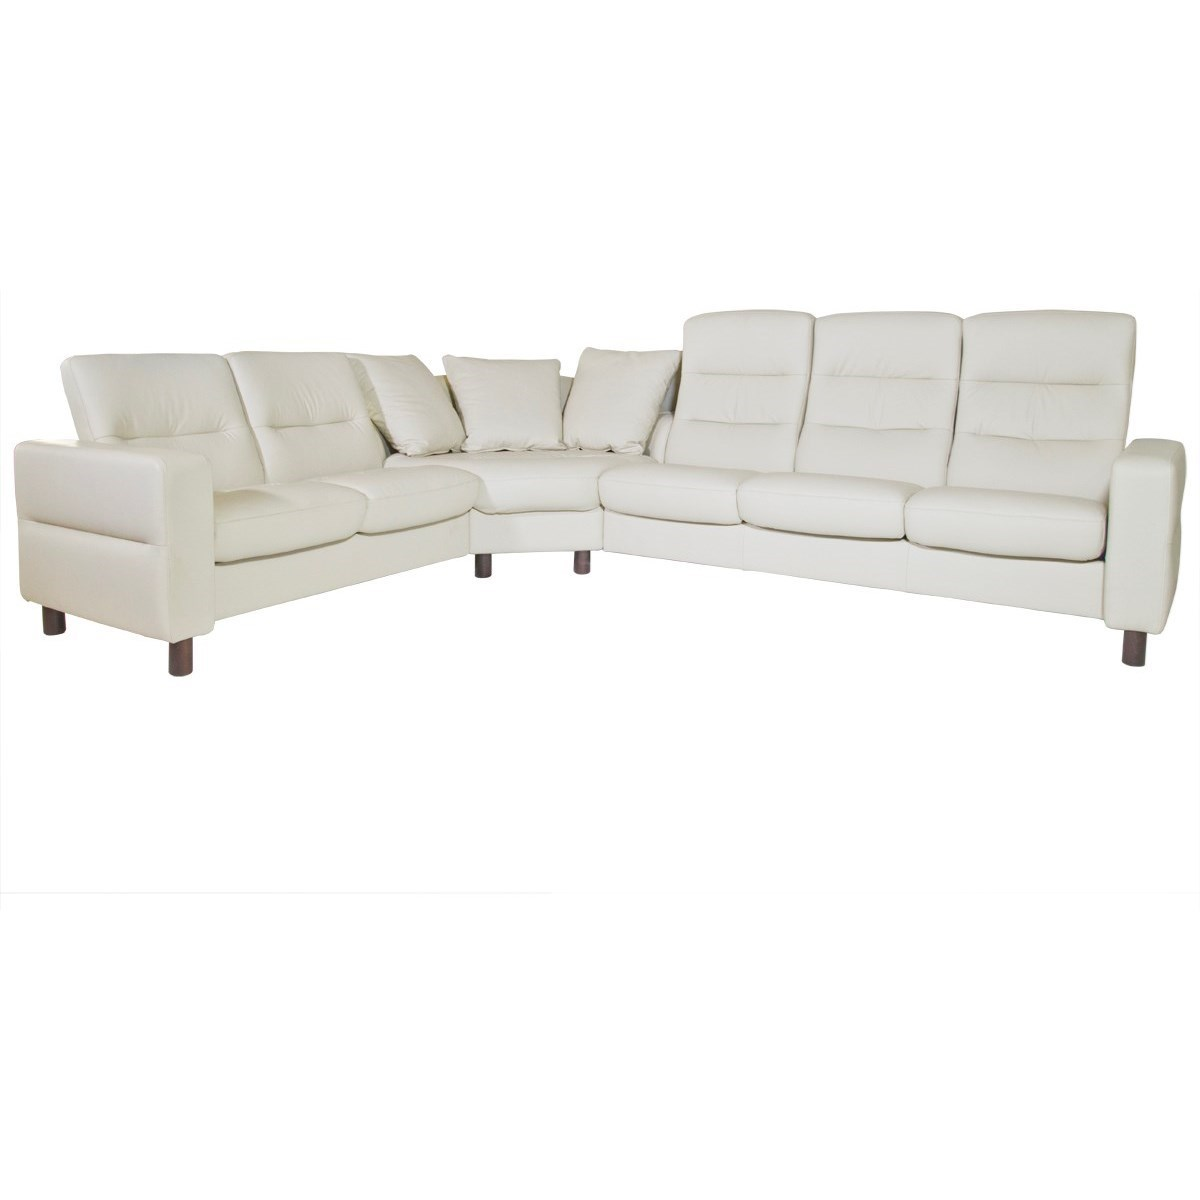 Stressless Sofa Leather Ekornes Sectional Sofa Stressless Granada Sectional High